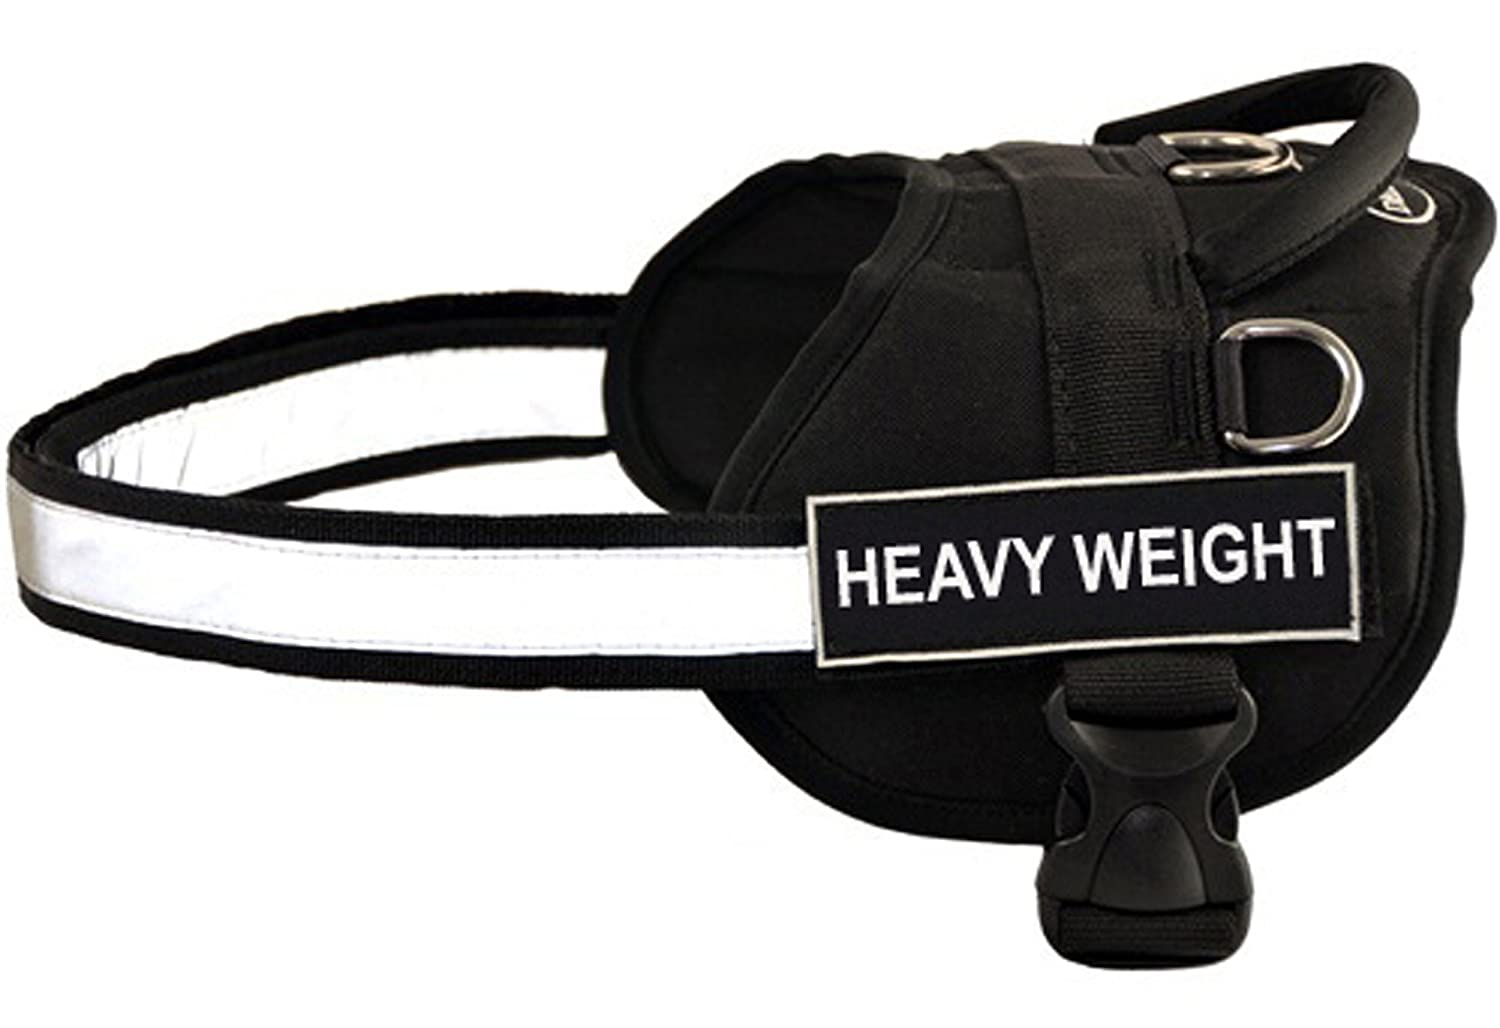 Dean & Tyler D&T WFUN HEAVYW BK-XXS Works Fun Harness, Heavy Weight, XX-Small-Fits Girth, 46cm to 53cm, Black White